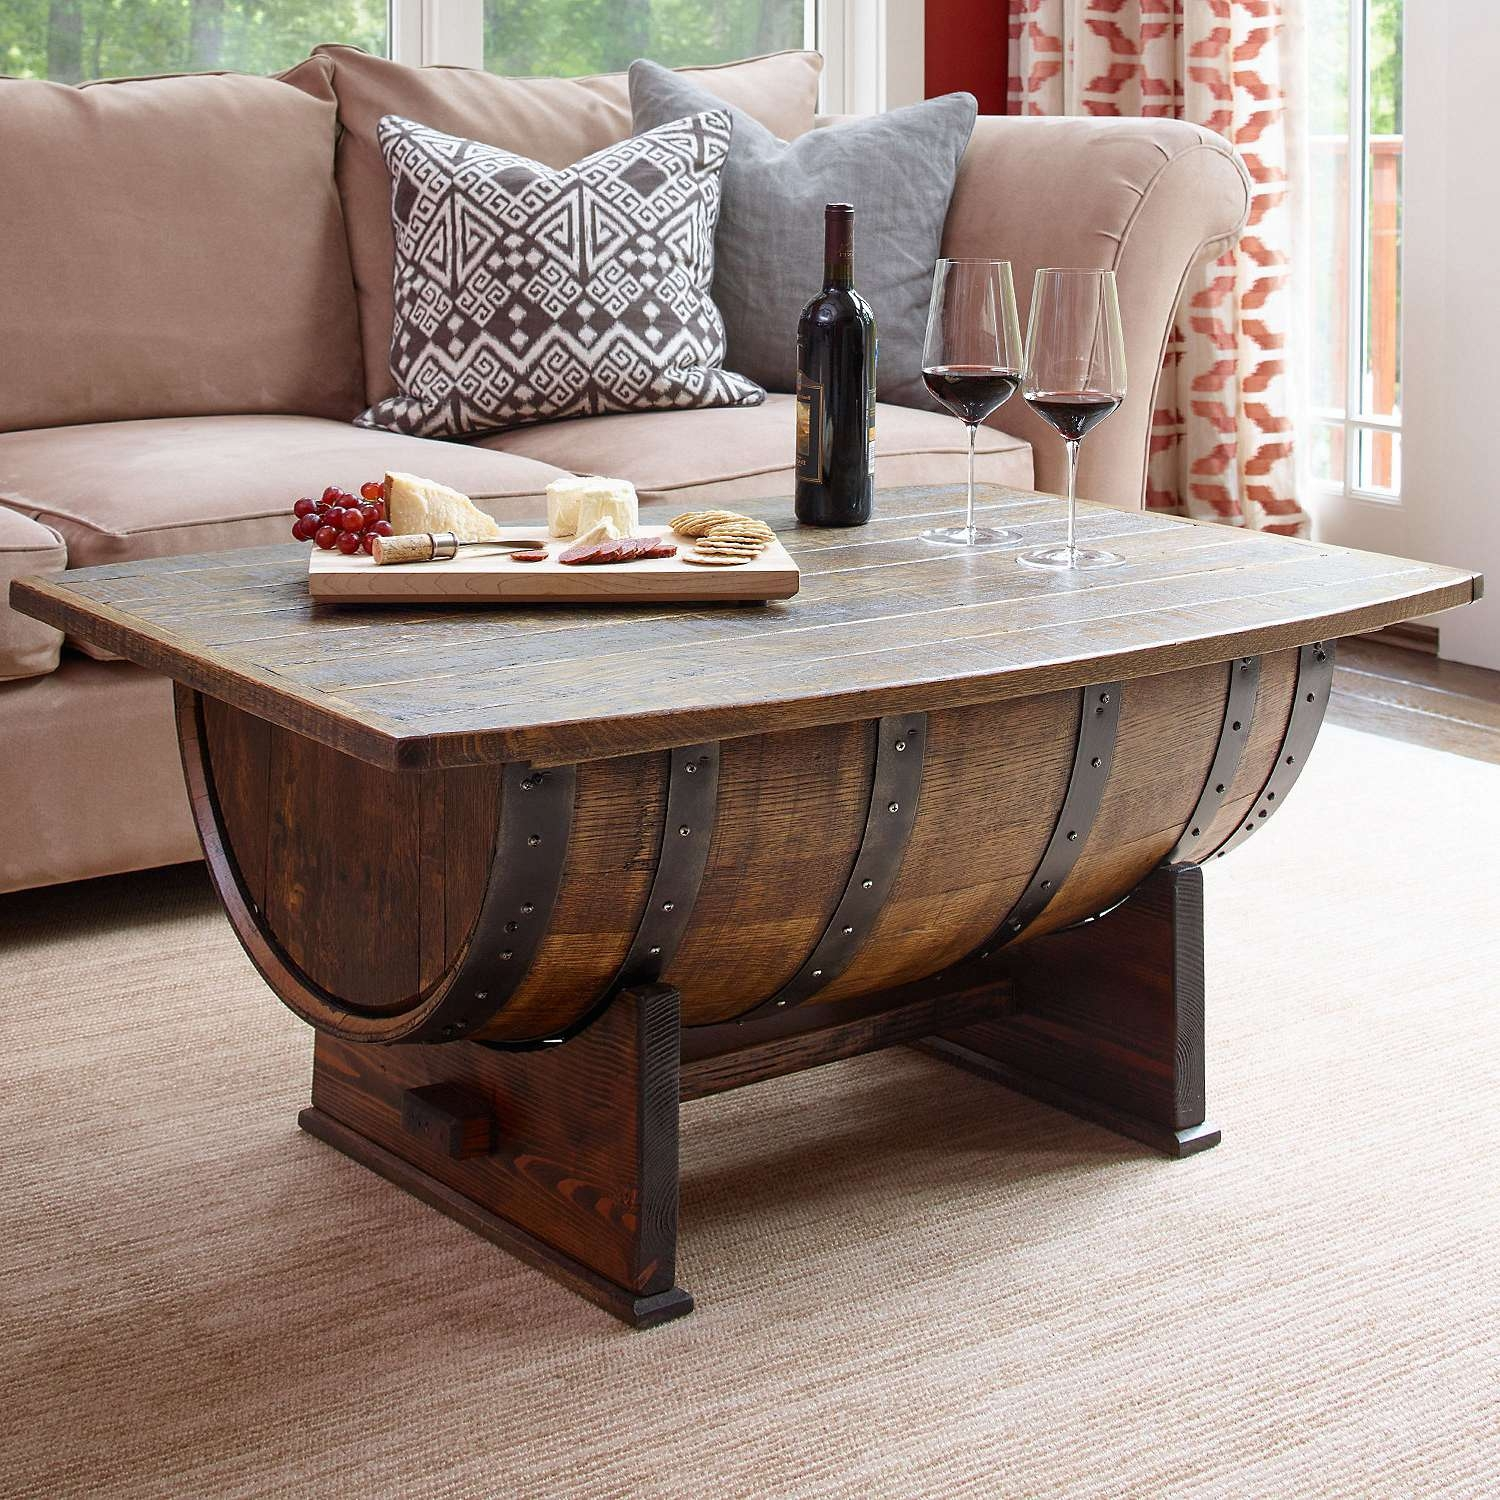 Handmade Vintage Oak Whiskey Barrel Coffee Table – Wine Enthusiast With 2018 Retro Oak Coffee Tables (View 15 of 20)